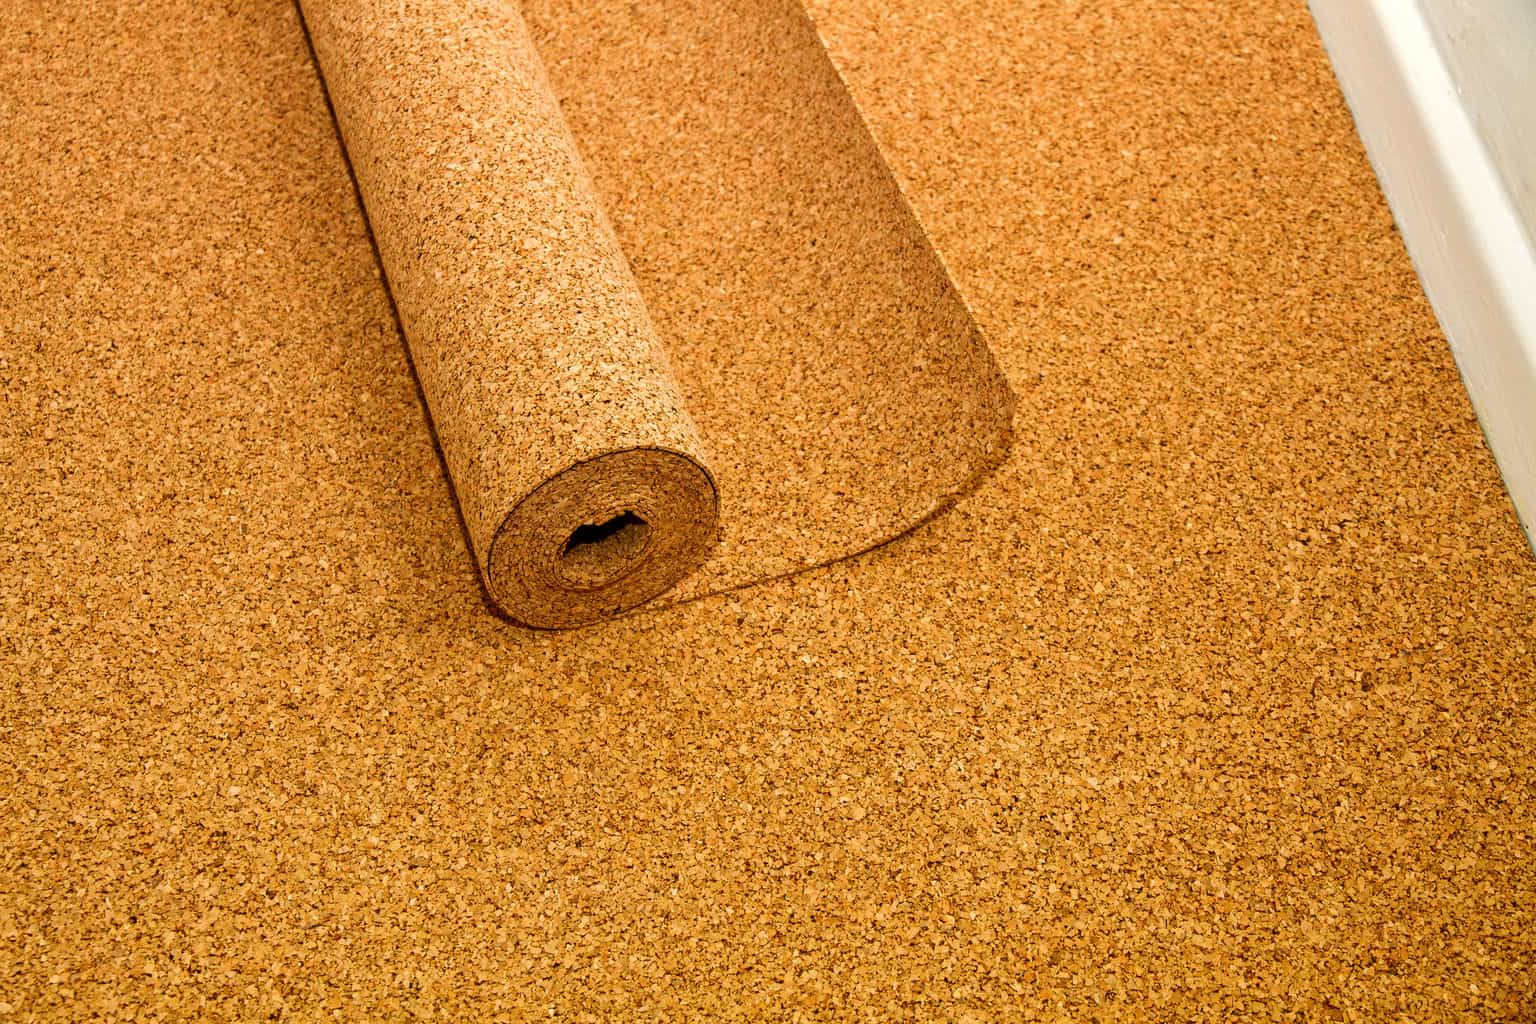 How to install cork flooring tips and guidelines for for Cork floor tiles